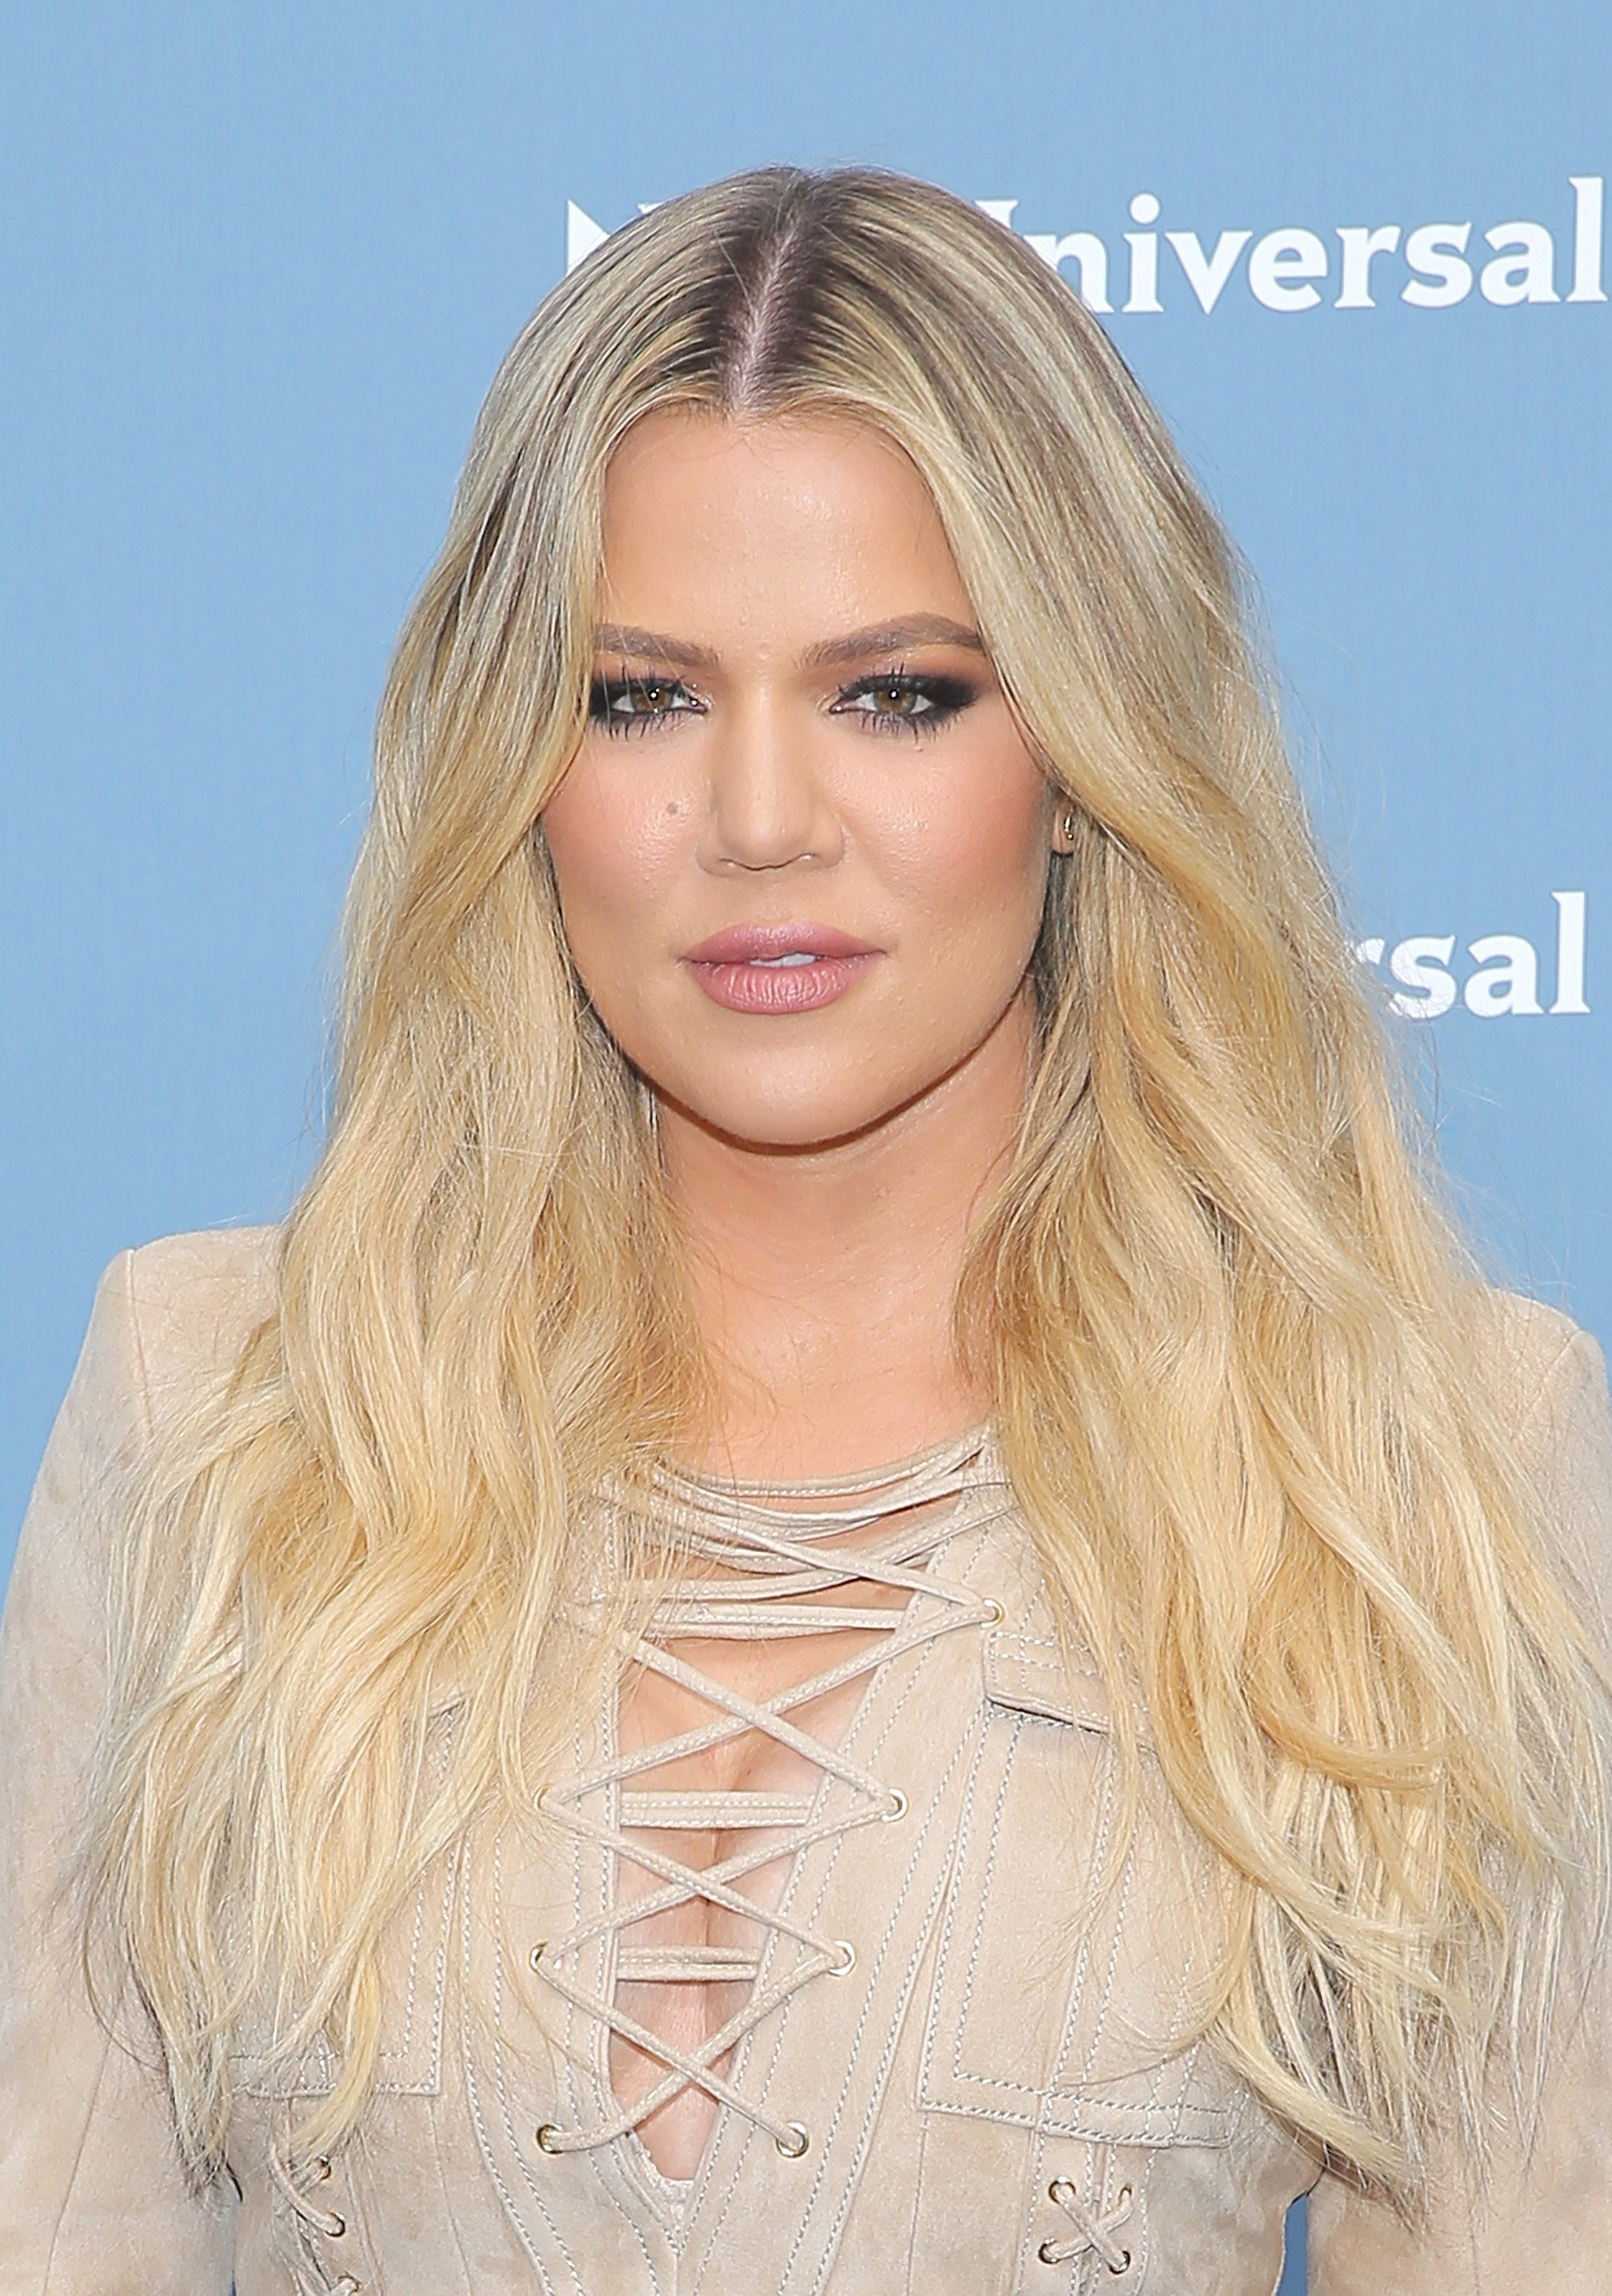 Khloe Kardashian at Radio City Music Hall on May 16, 2016 in New York City.| Source: Getty Images